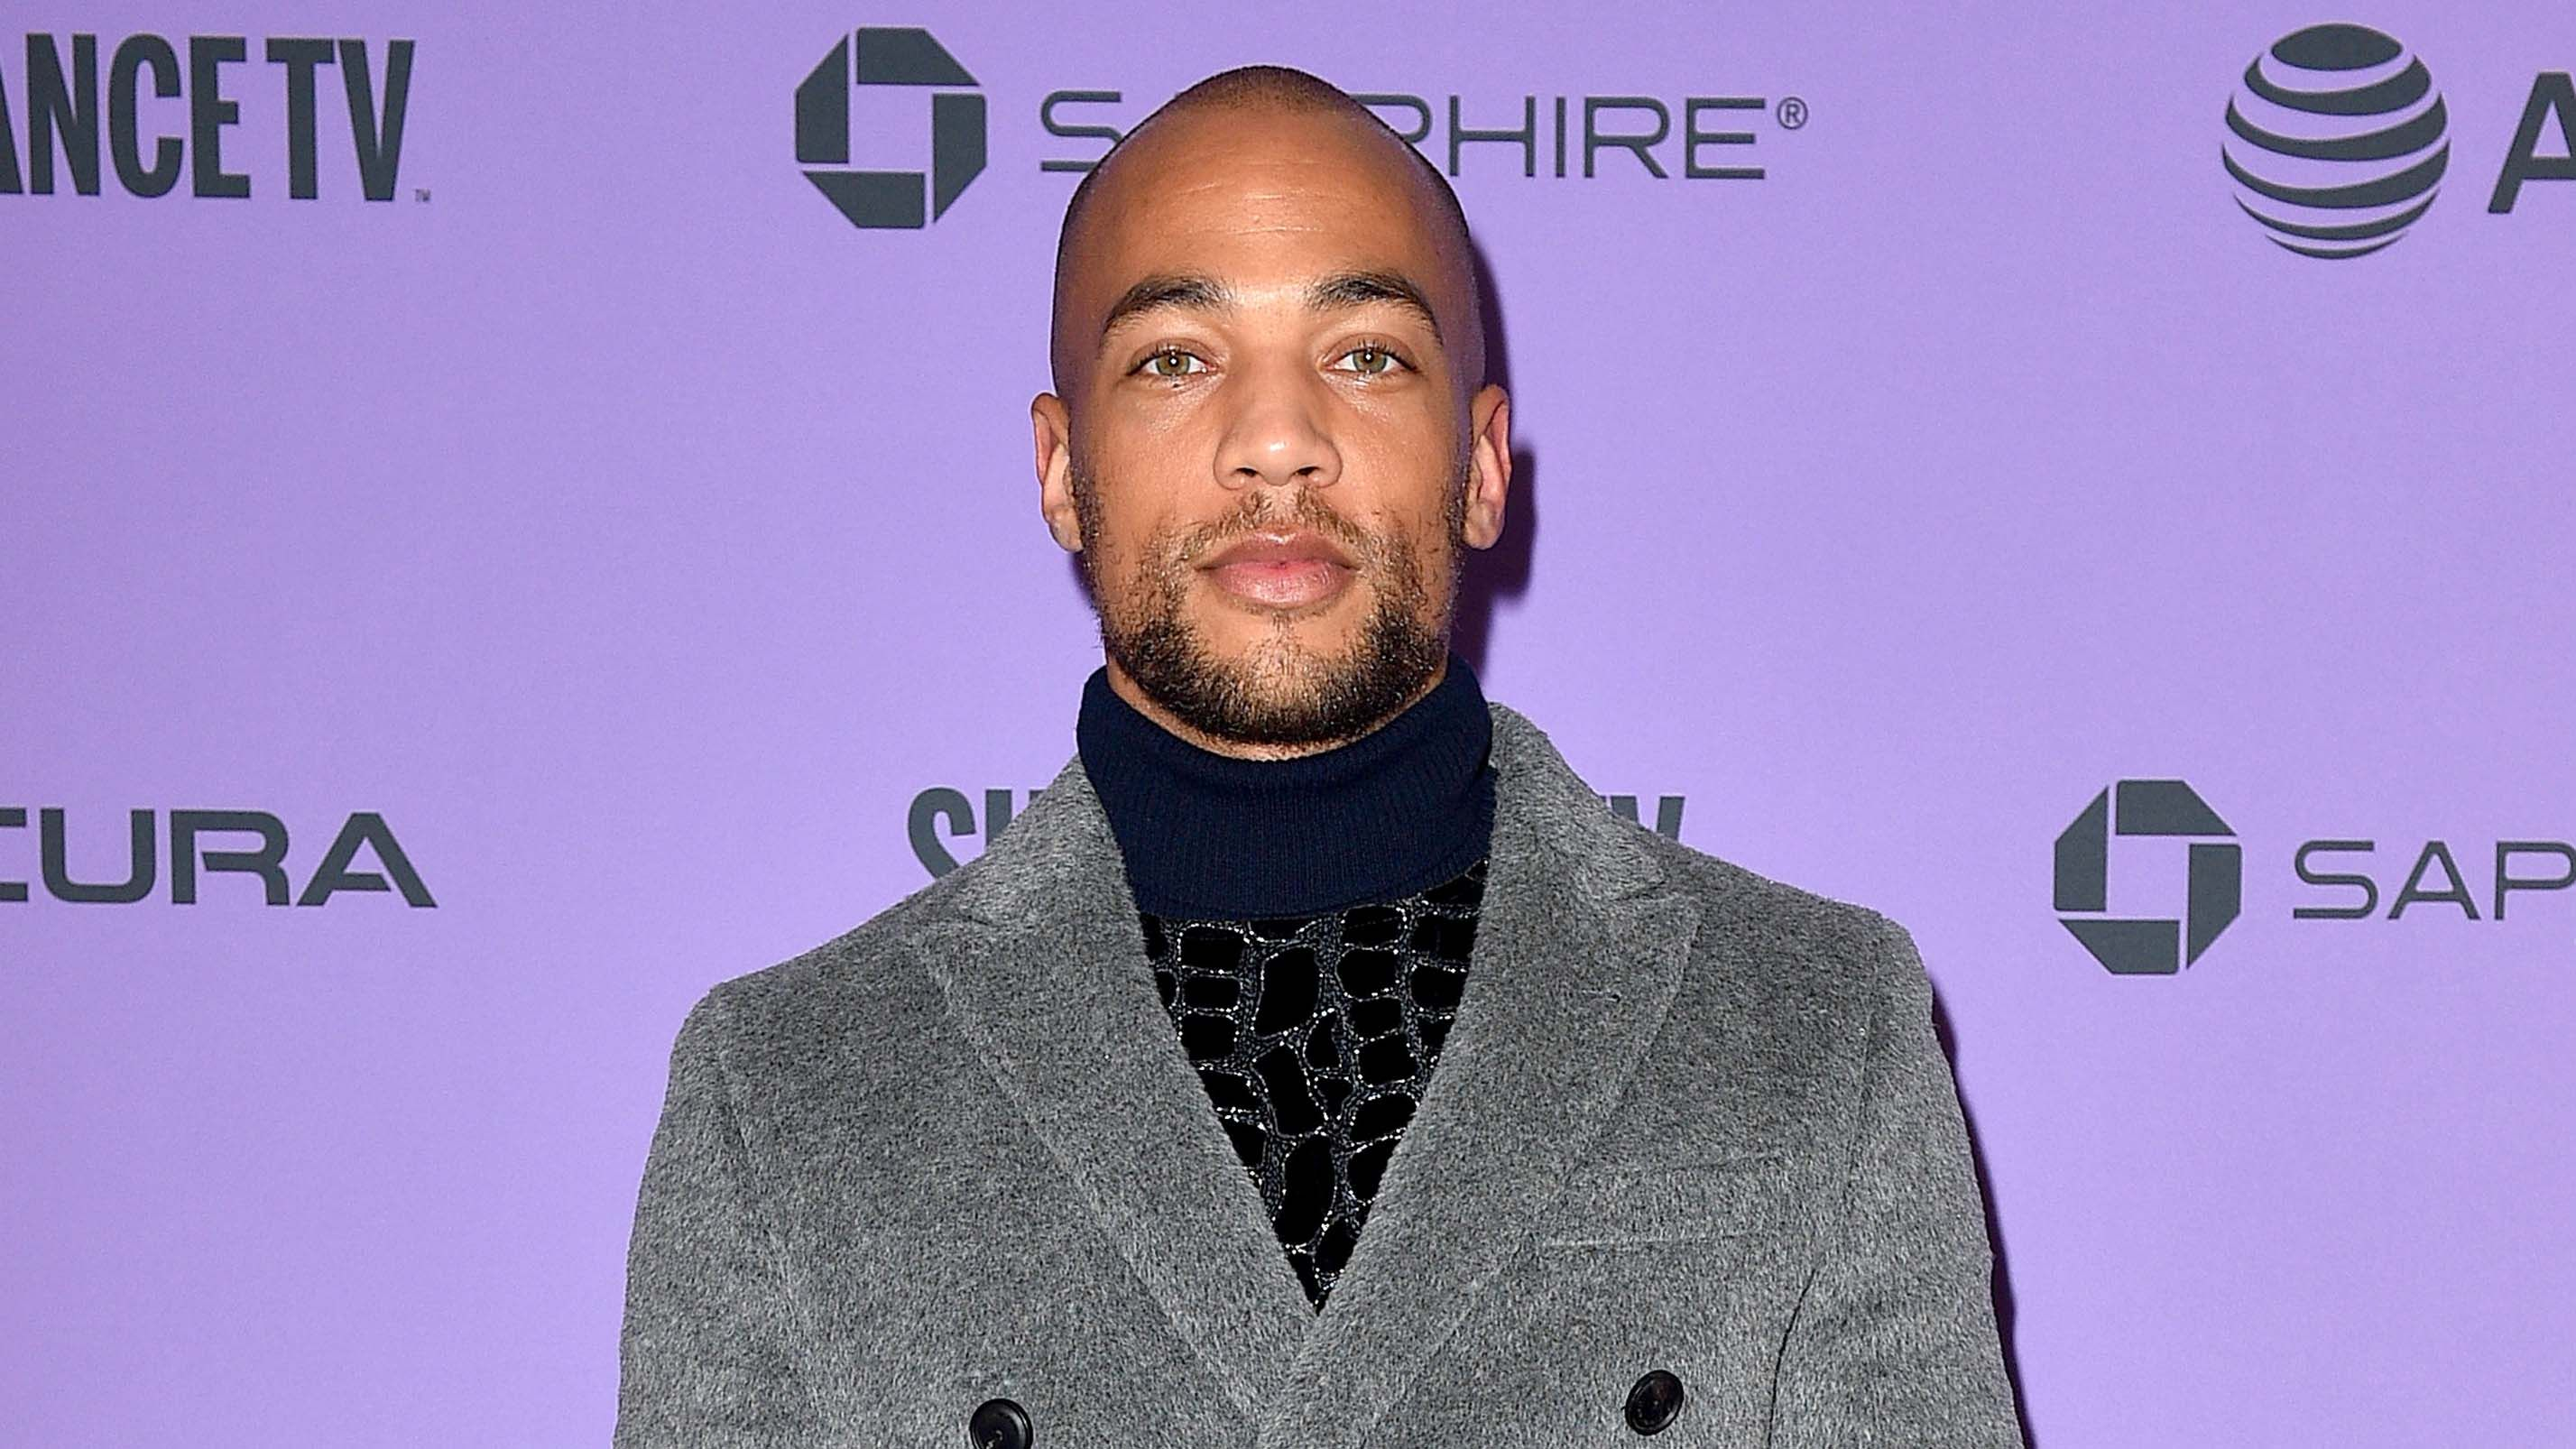 FOX NEWS 'Insecure' actor Kendrick Sampson says he was